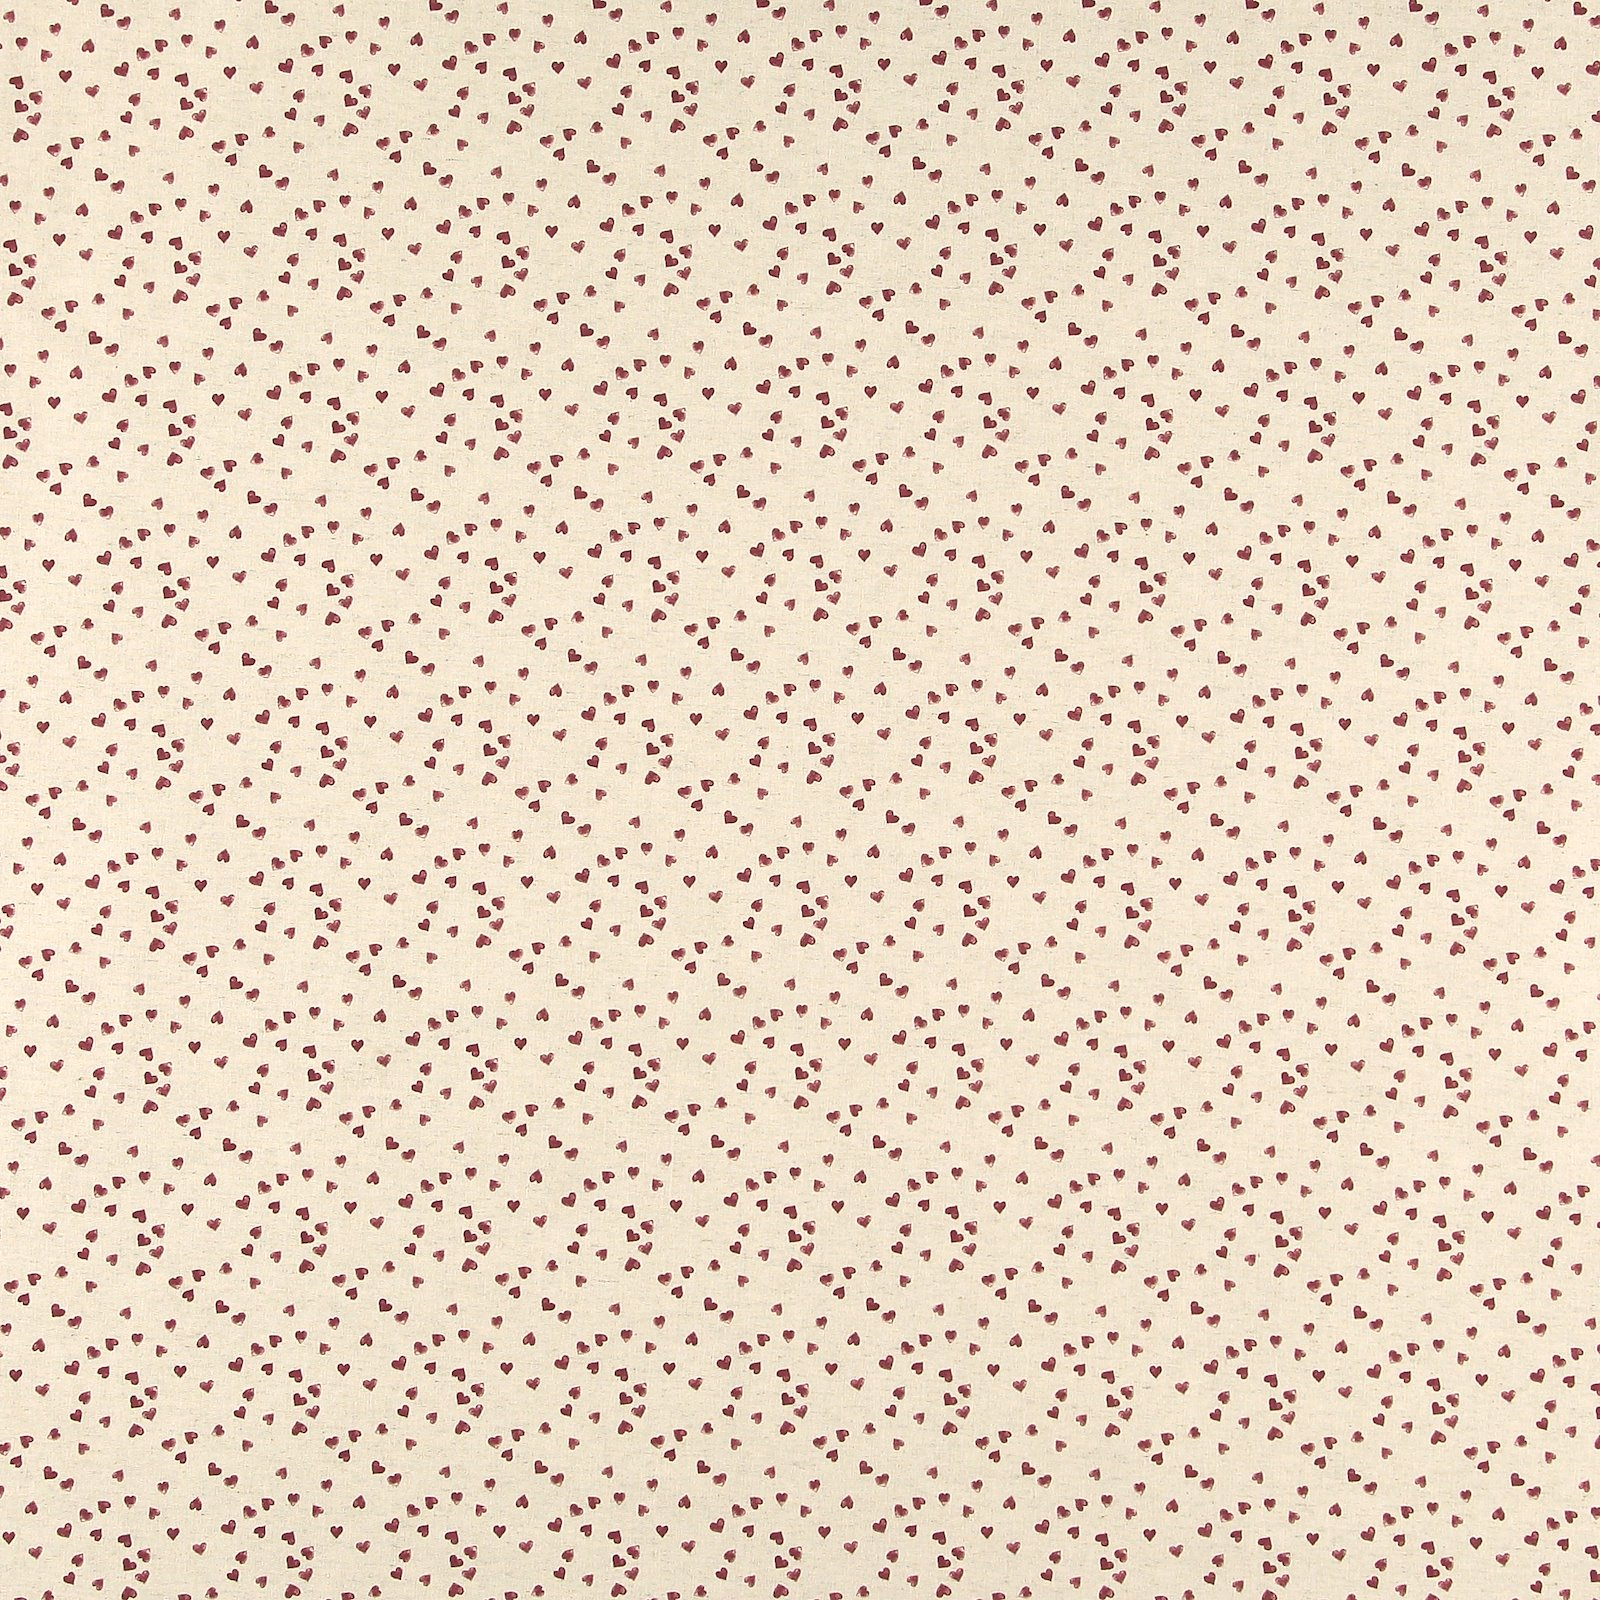 Woven cotton/linen with red hearts 780557_pack_sp